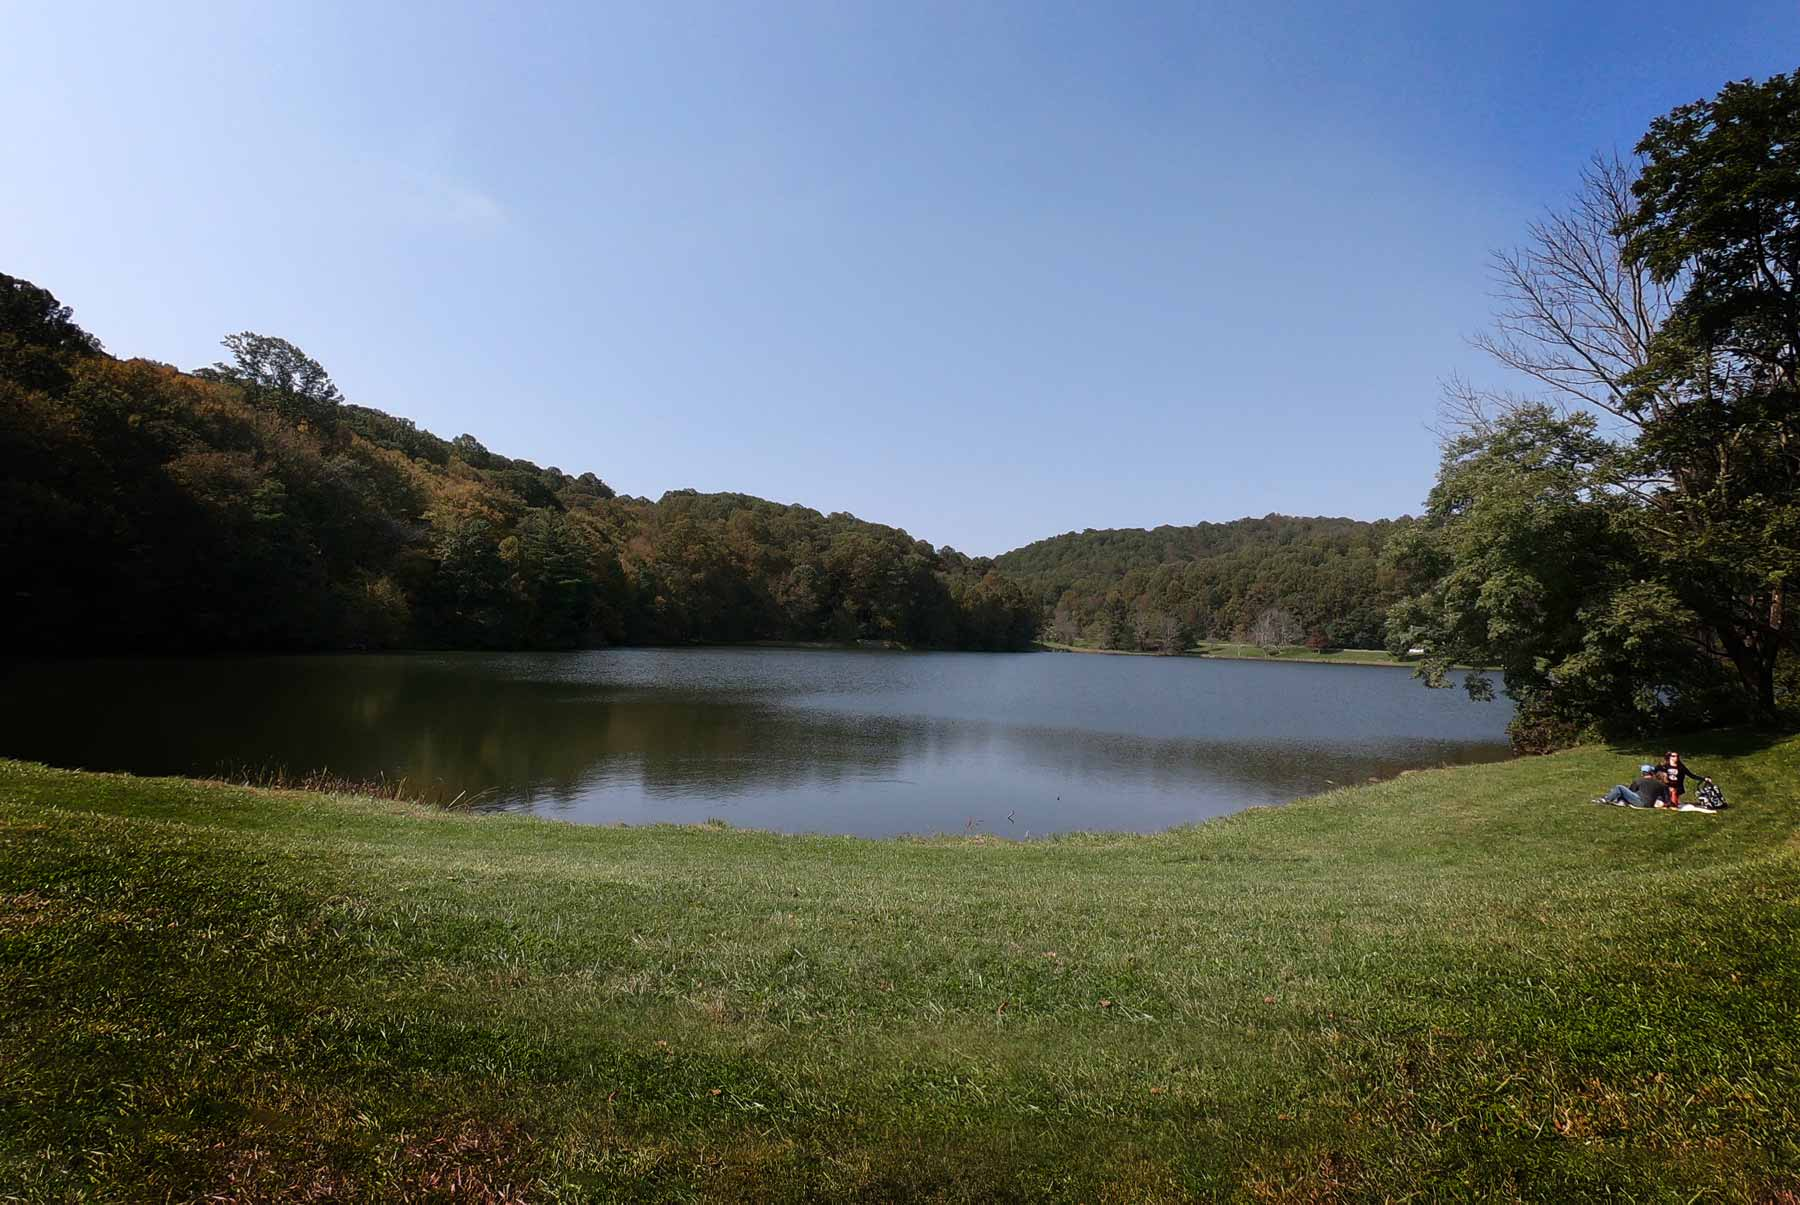 Abbott Lake at Peaks of Otter Historic Lodge off Blue Ridge Parkway, Virginia